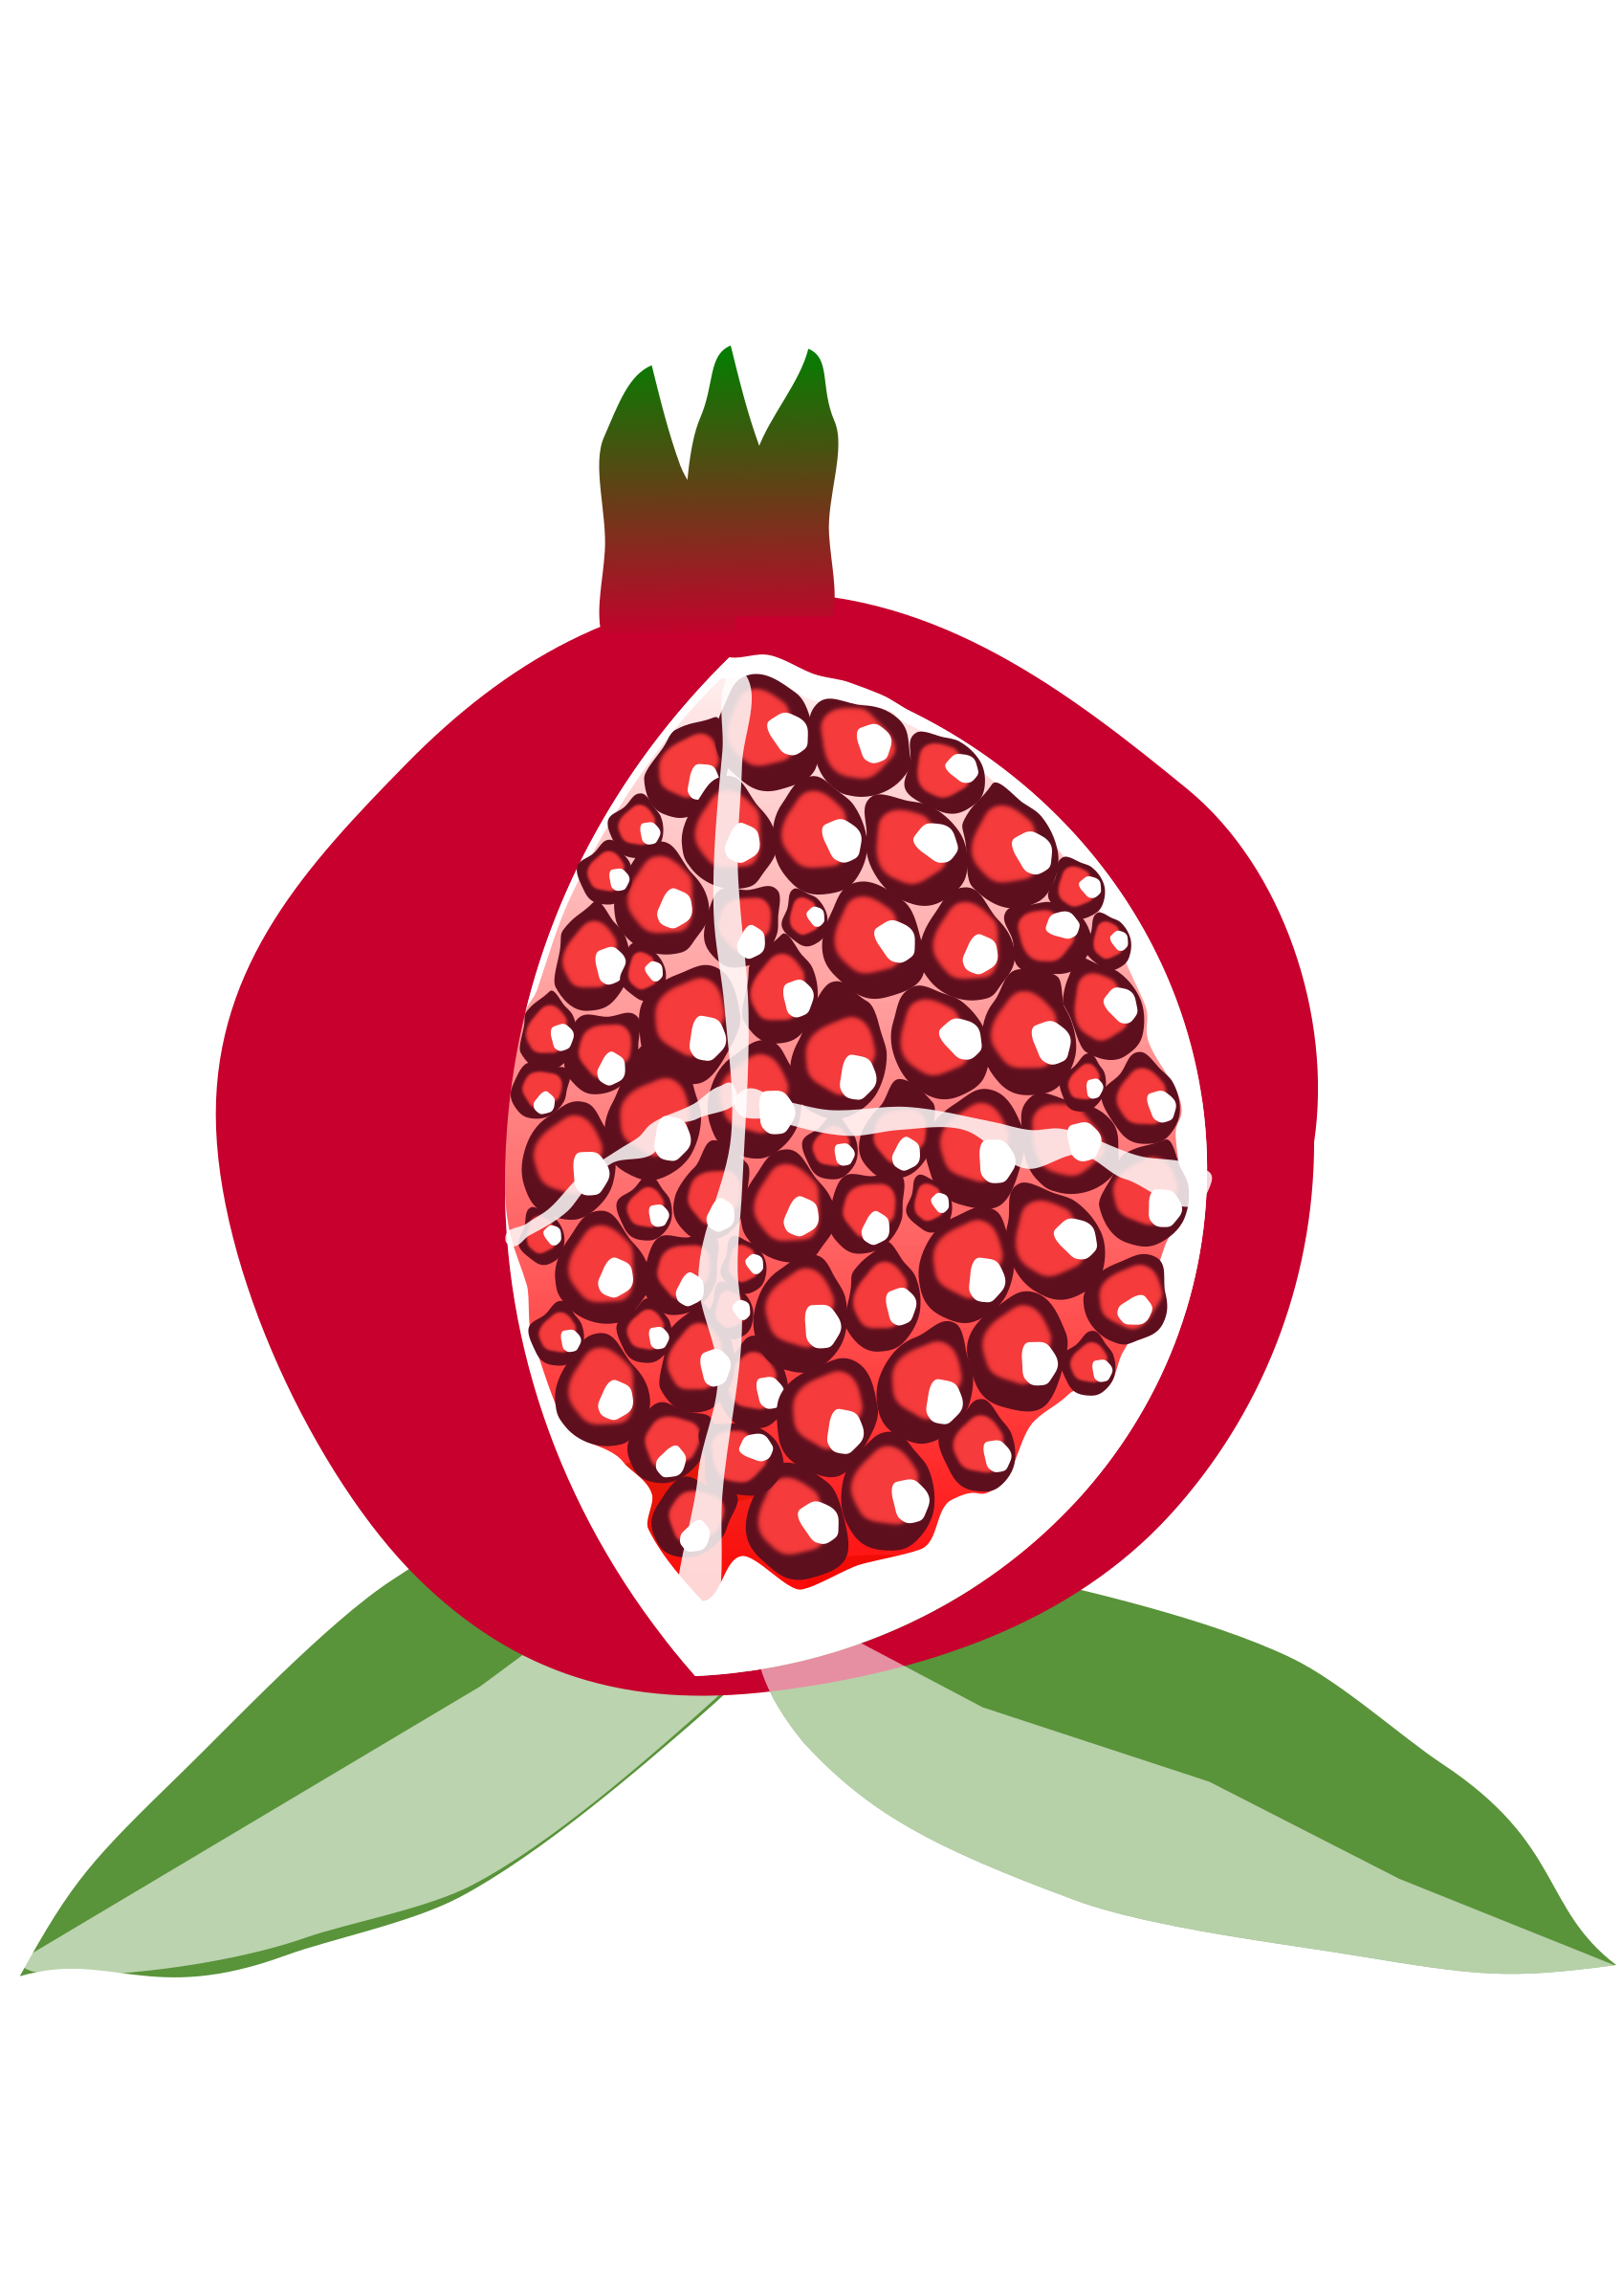 Pomegranate big image png. Scale clipart fruit